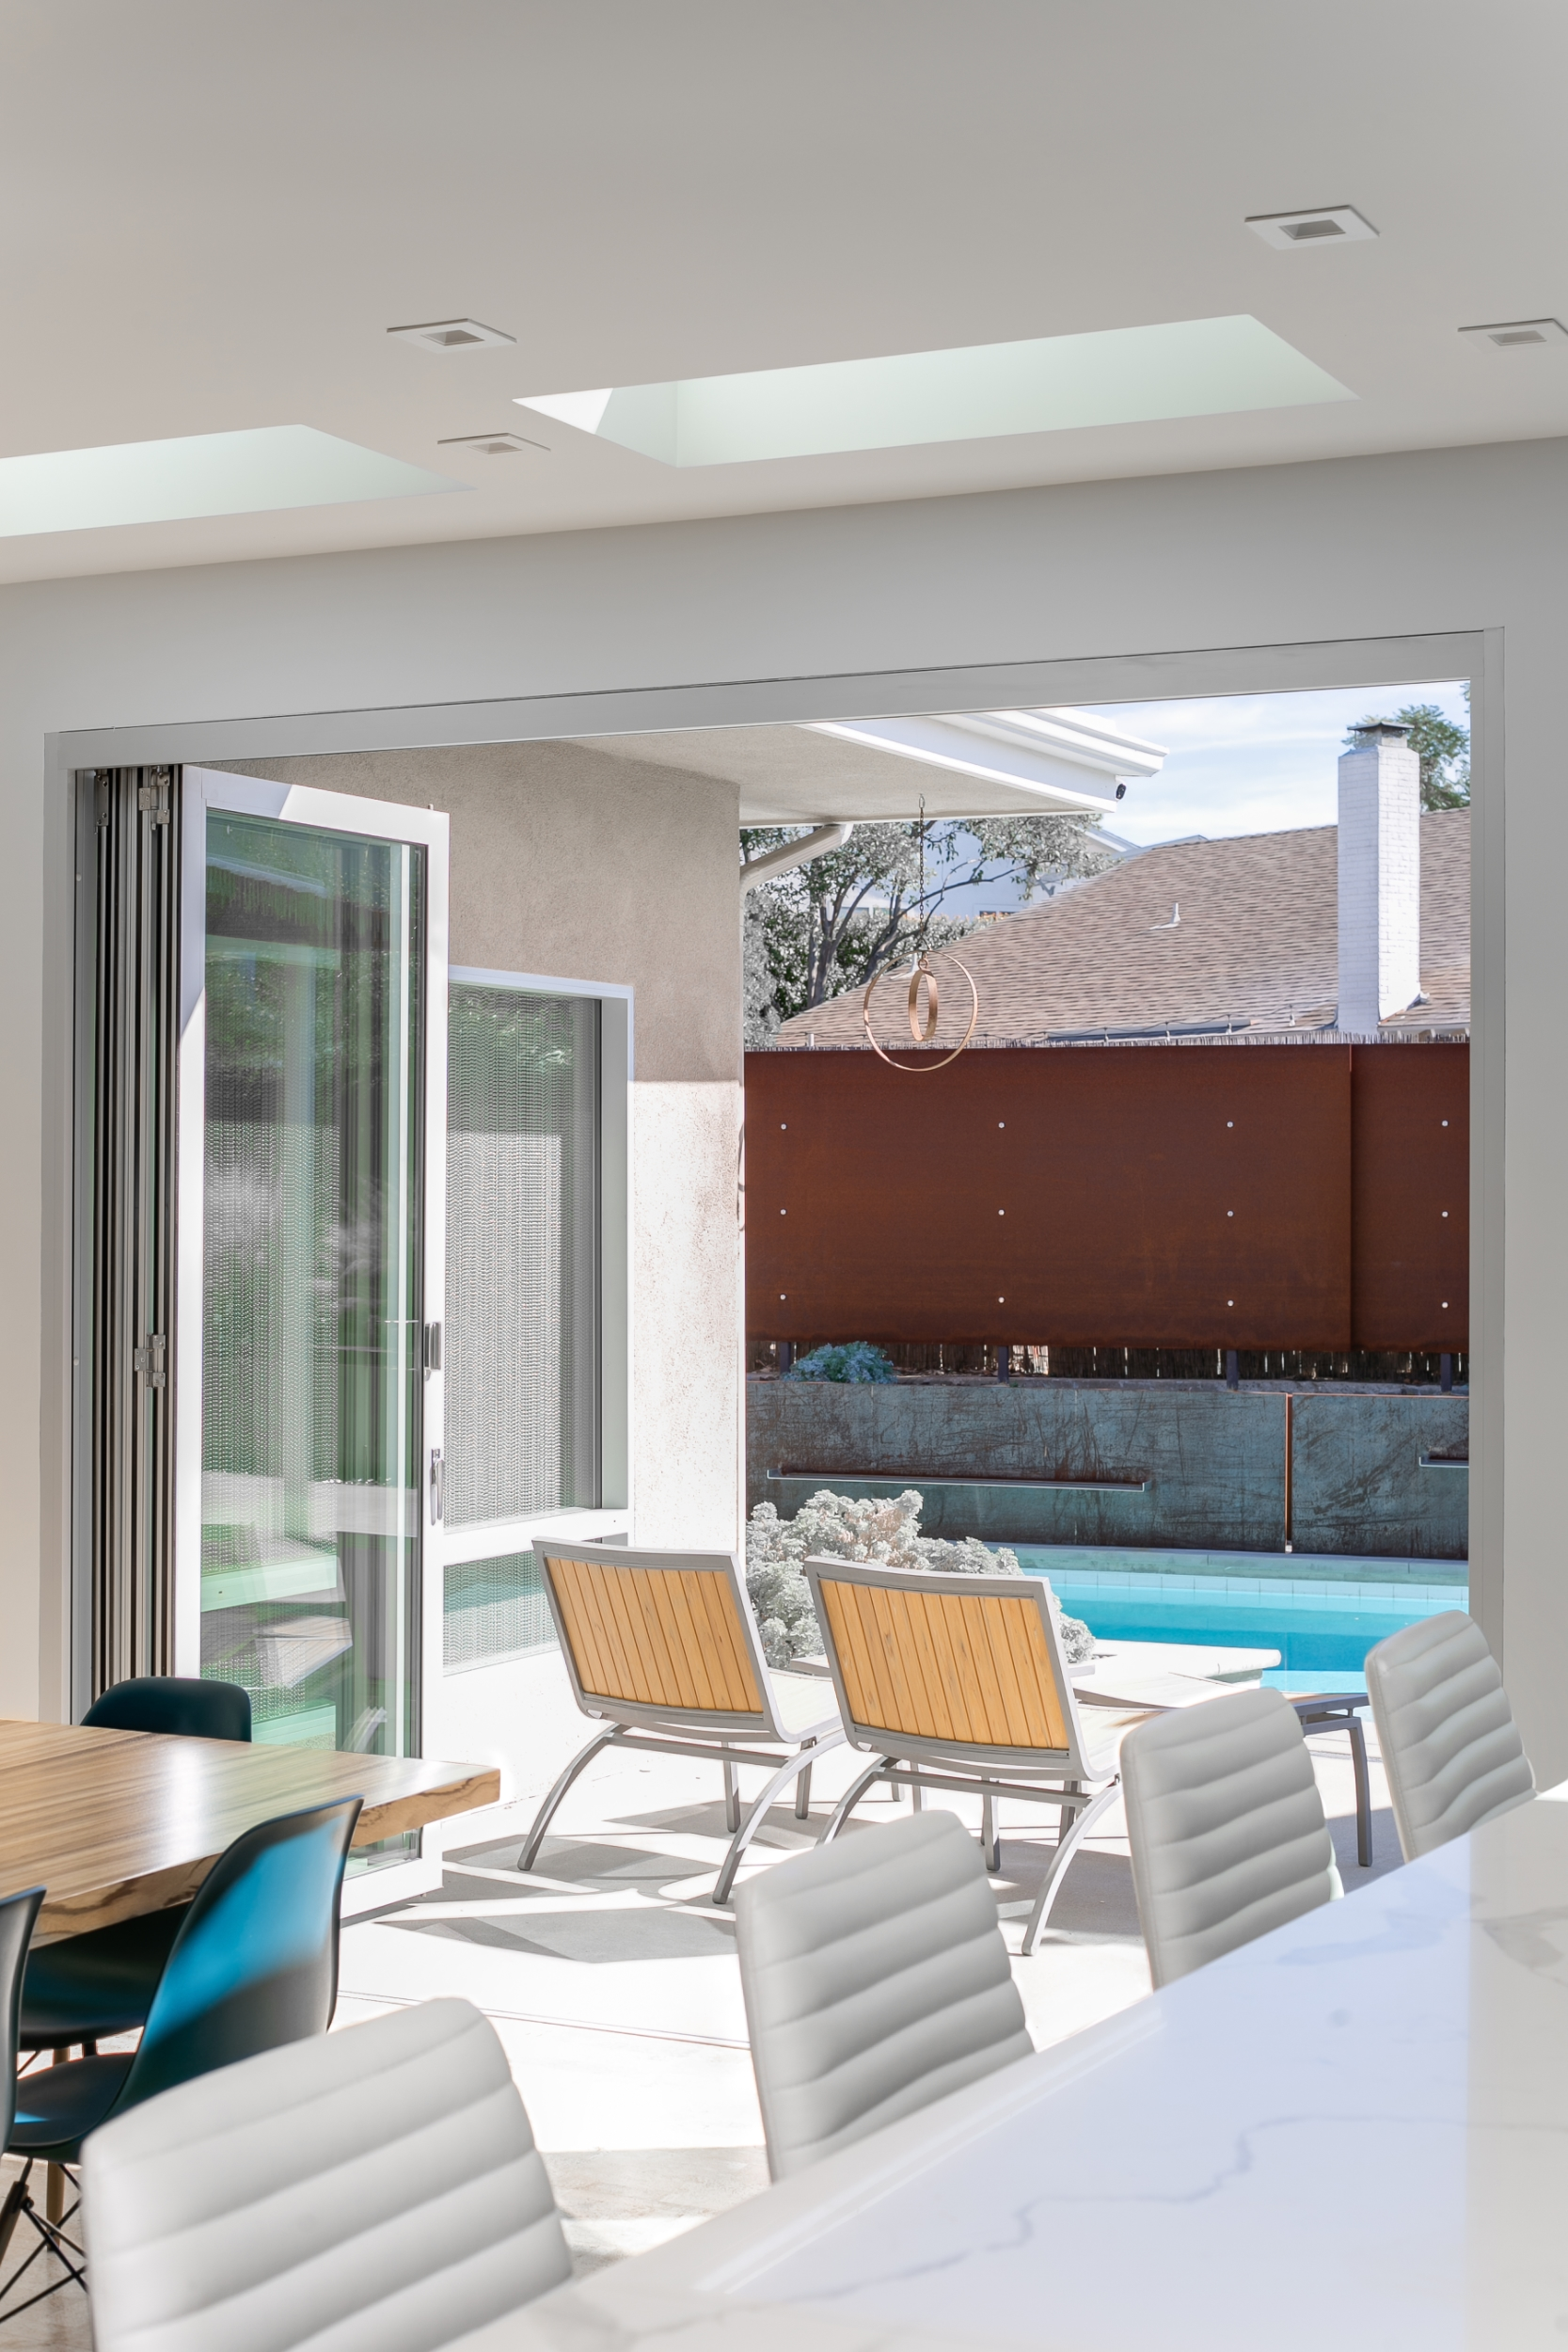 Indoor-outdoor living: the folding glass doors open the kitchen and dining room onto the patio and the pool, accentuated with a Corten steel wall